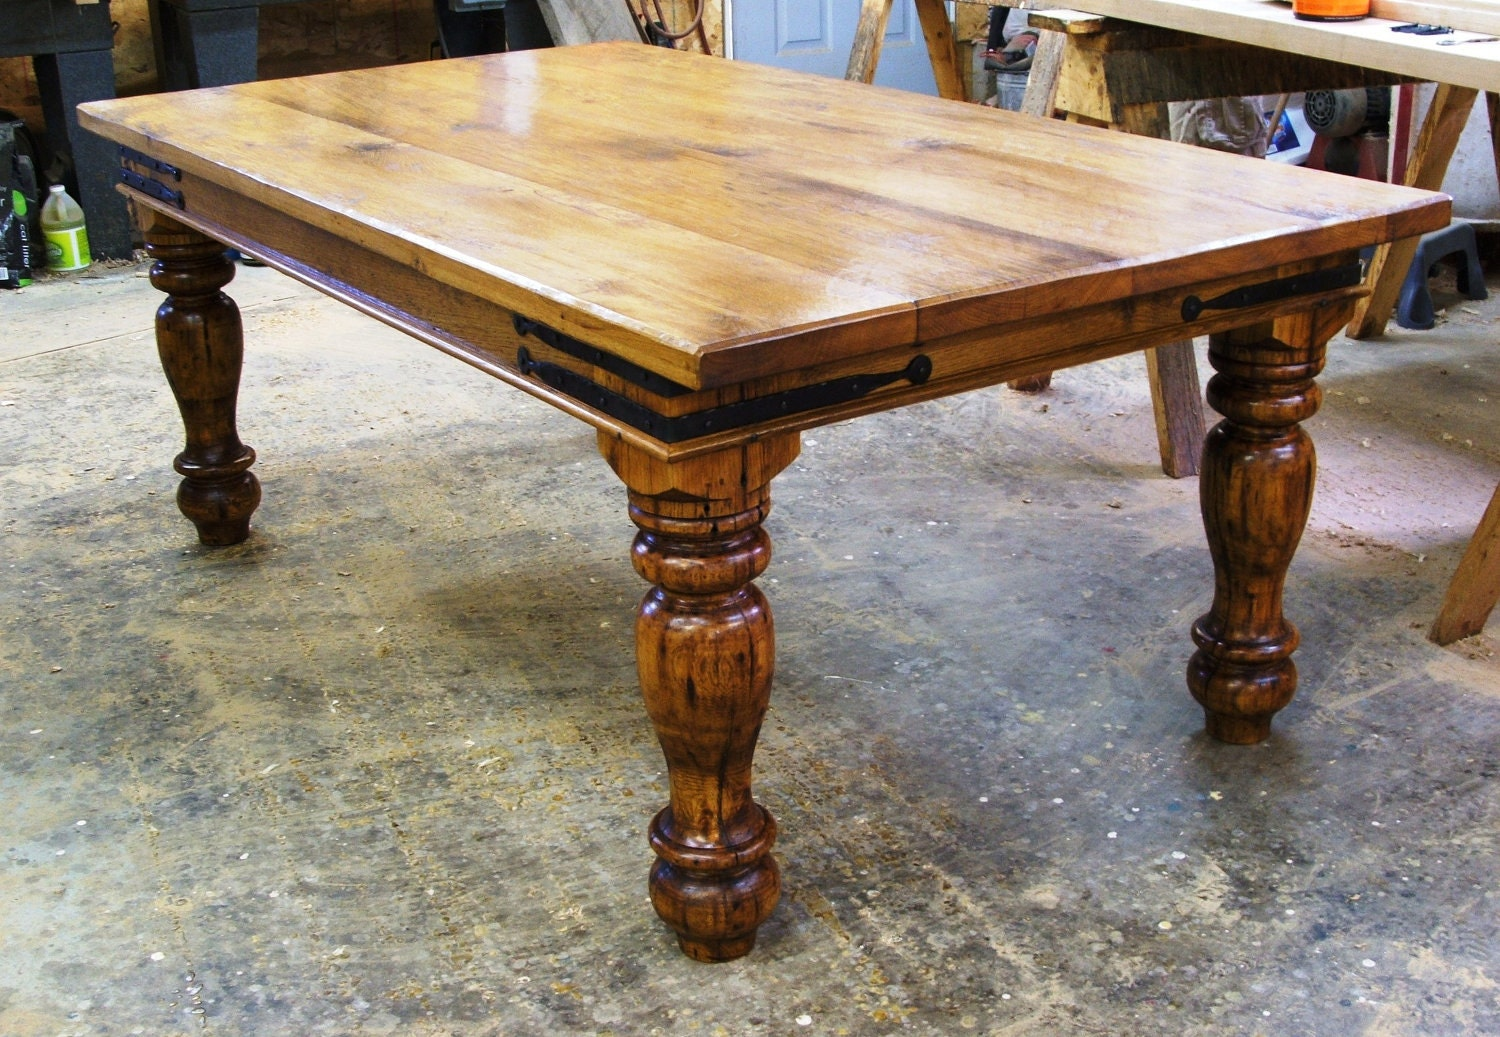 Reclaimed barnwood farmhouse table by FurnaceBrookIron on Etsy